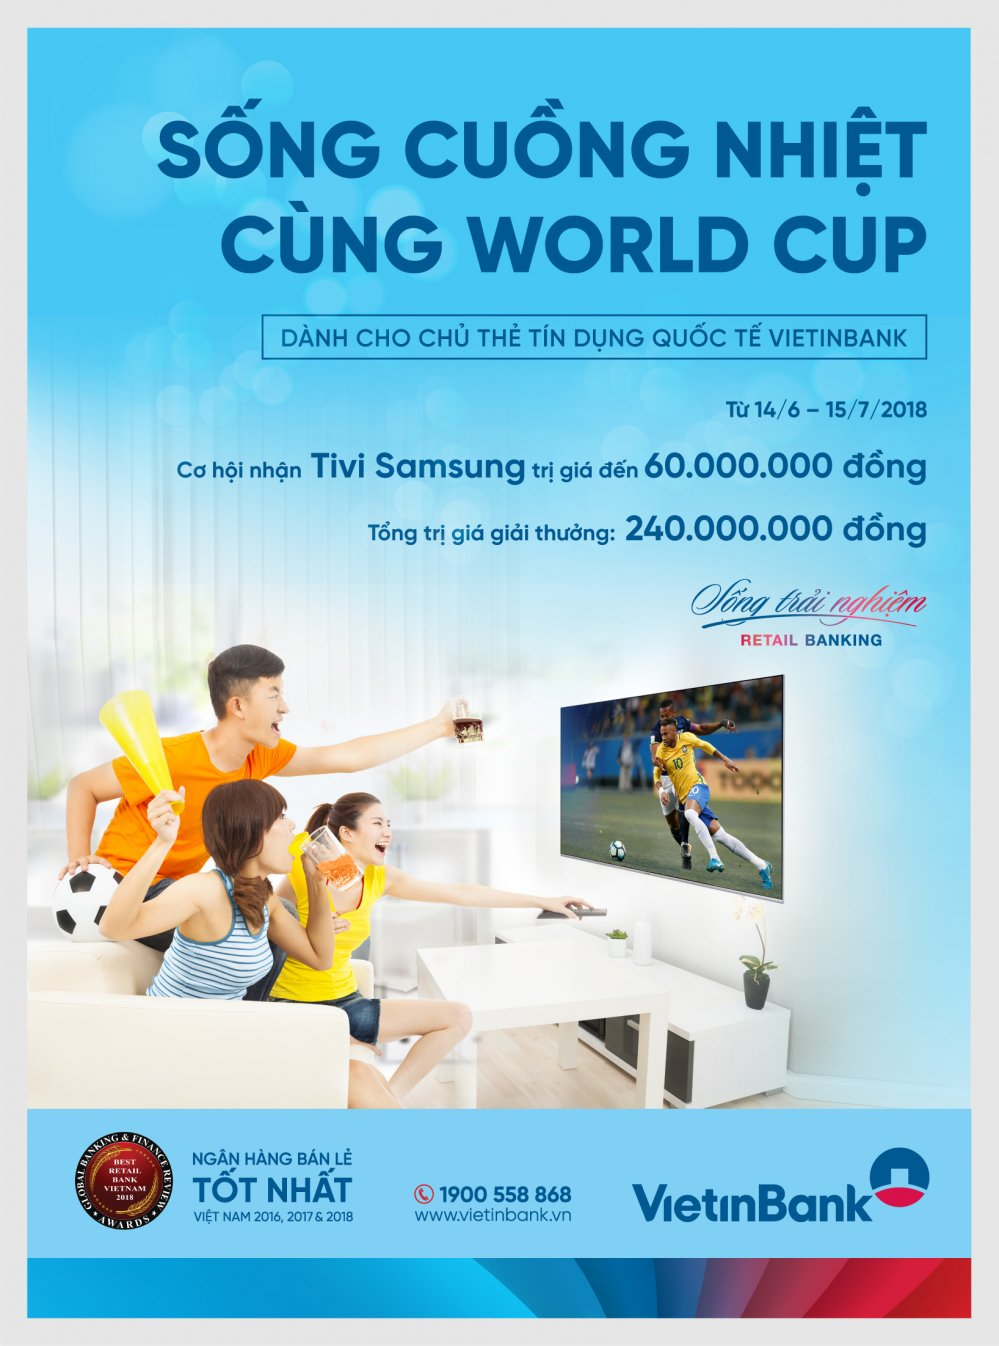 'Song cuong nhiet cung World Cup' voi the tin dung VietinBank hinh anh 1